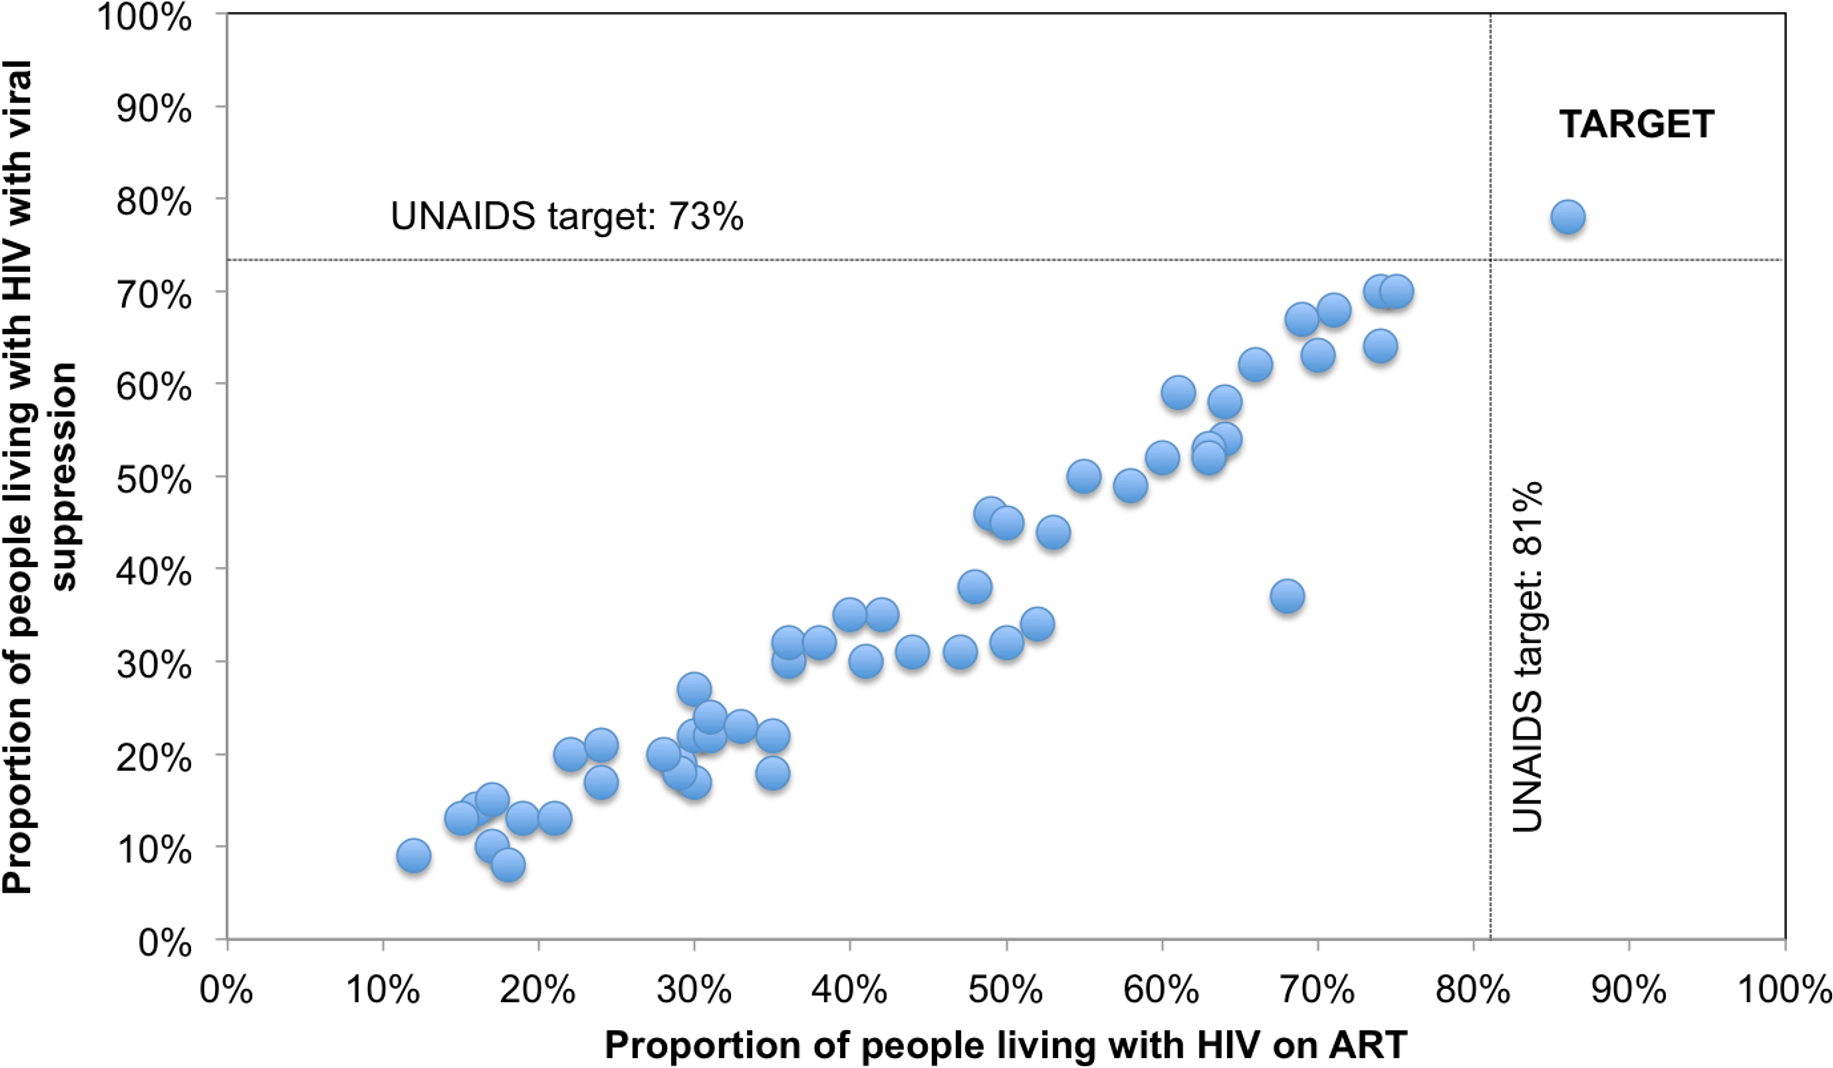 Country progress toward 90-90-90 target: Proportion of PLHIV on ART and with viral suppression for 53 countries.